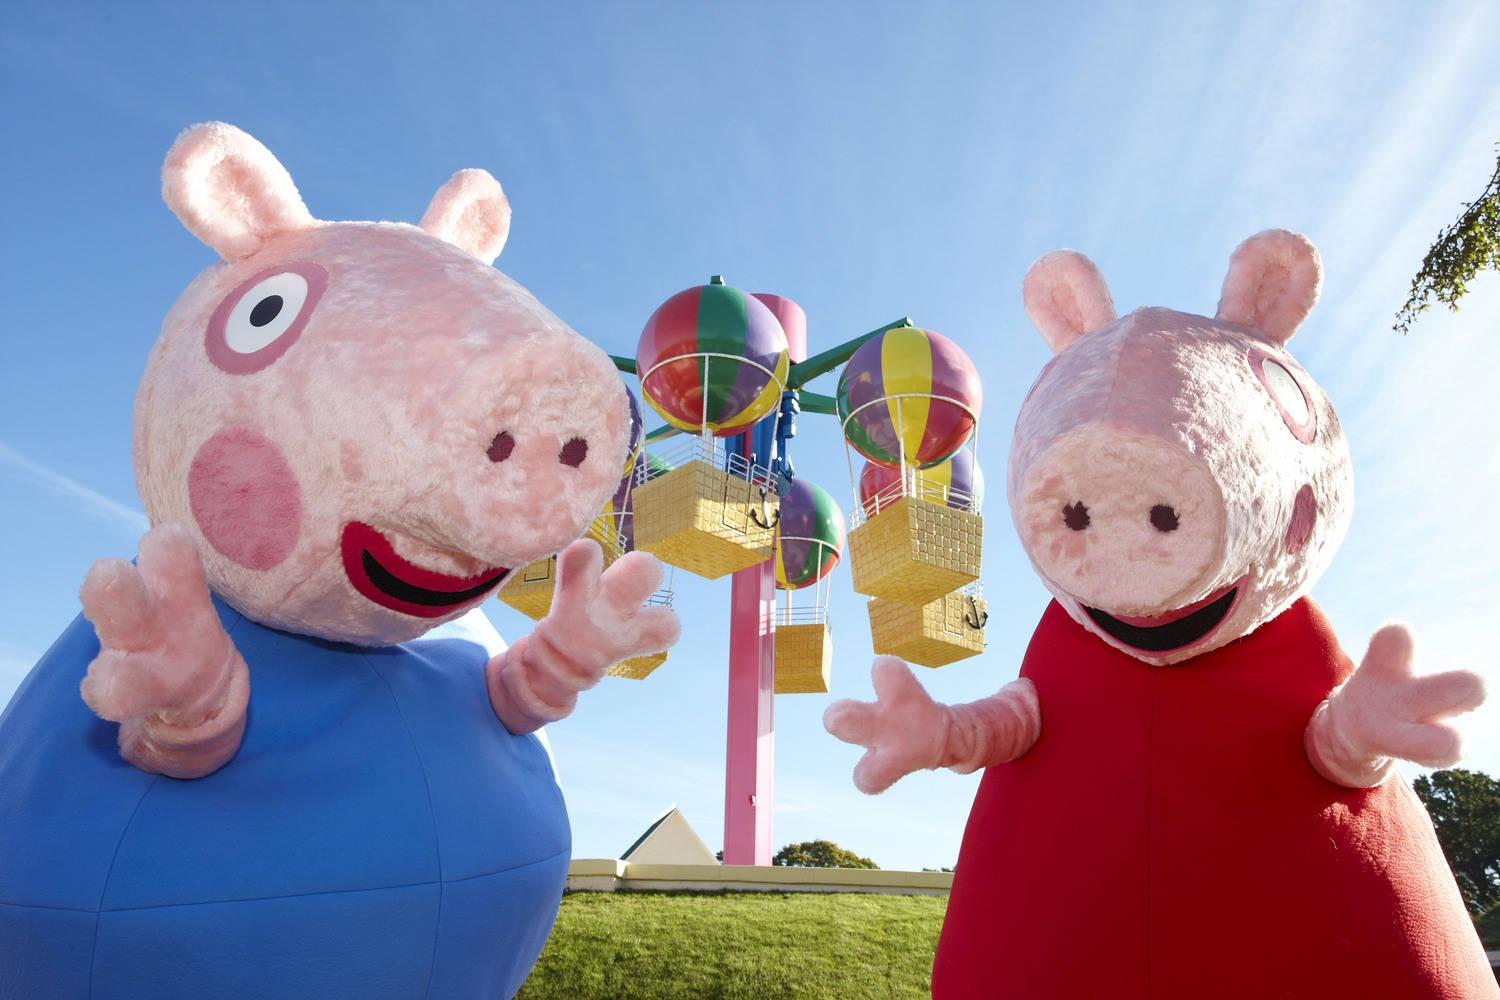 Peppa Pig World awarded Best Family Theme Park in the Tommy Awards